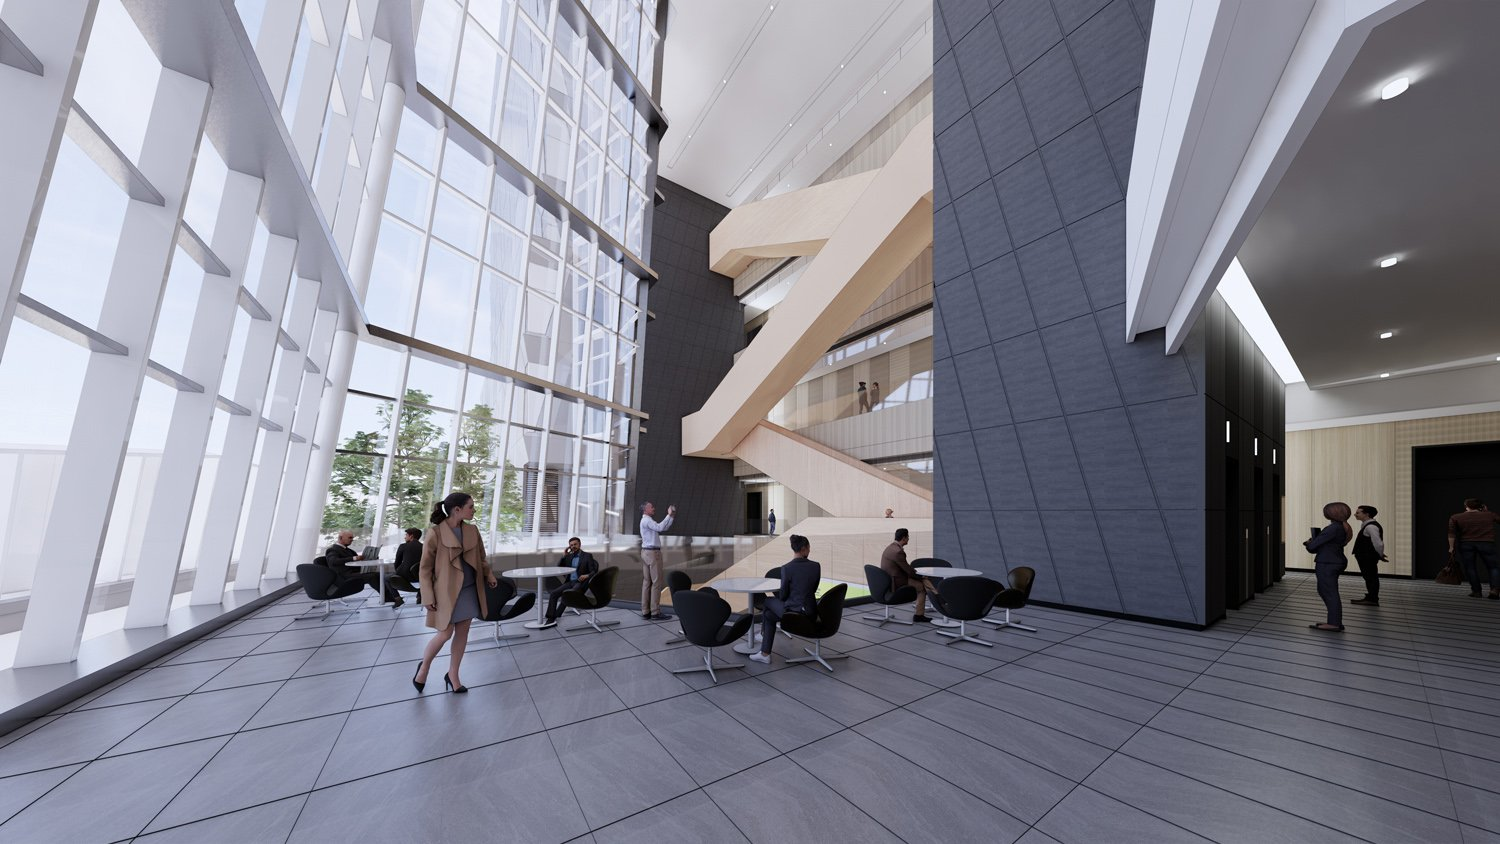 atrium space for communication and sharing JJP